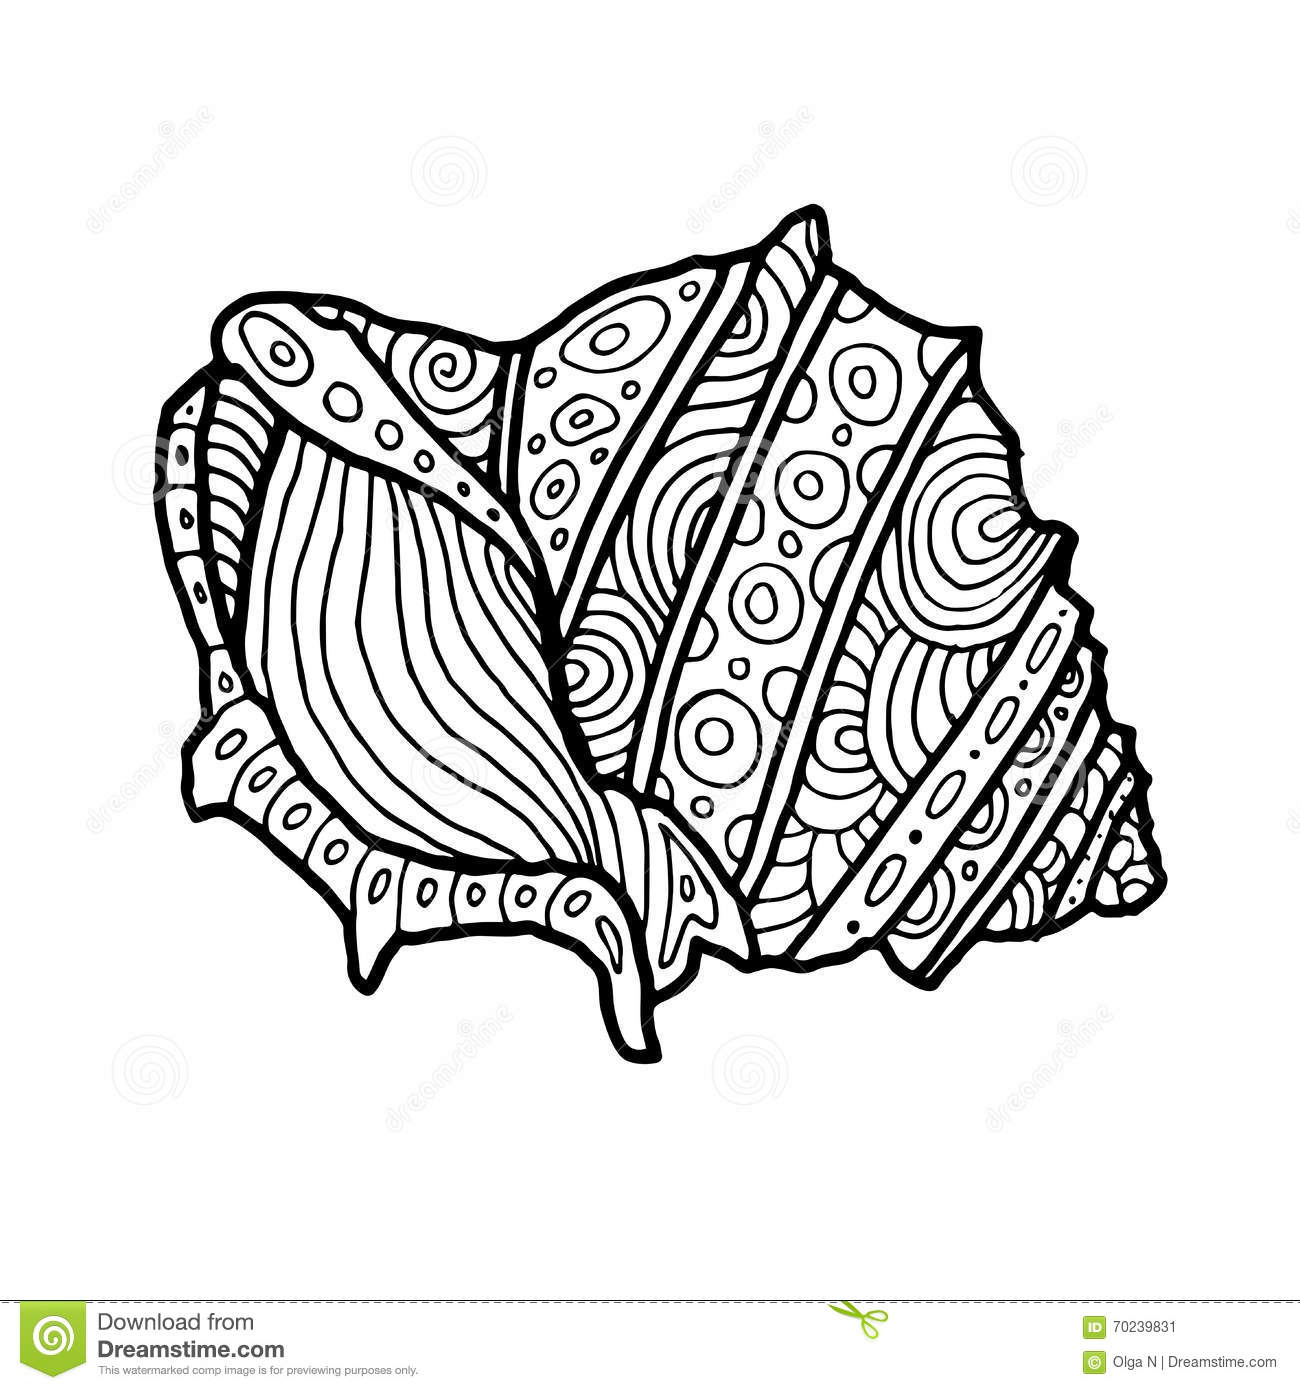 decorative zentangle sea shell illustration outline drawing coloring book for adult and children coloring page vector